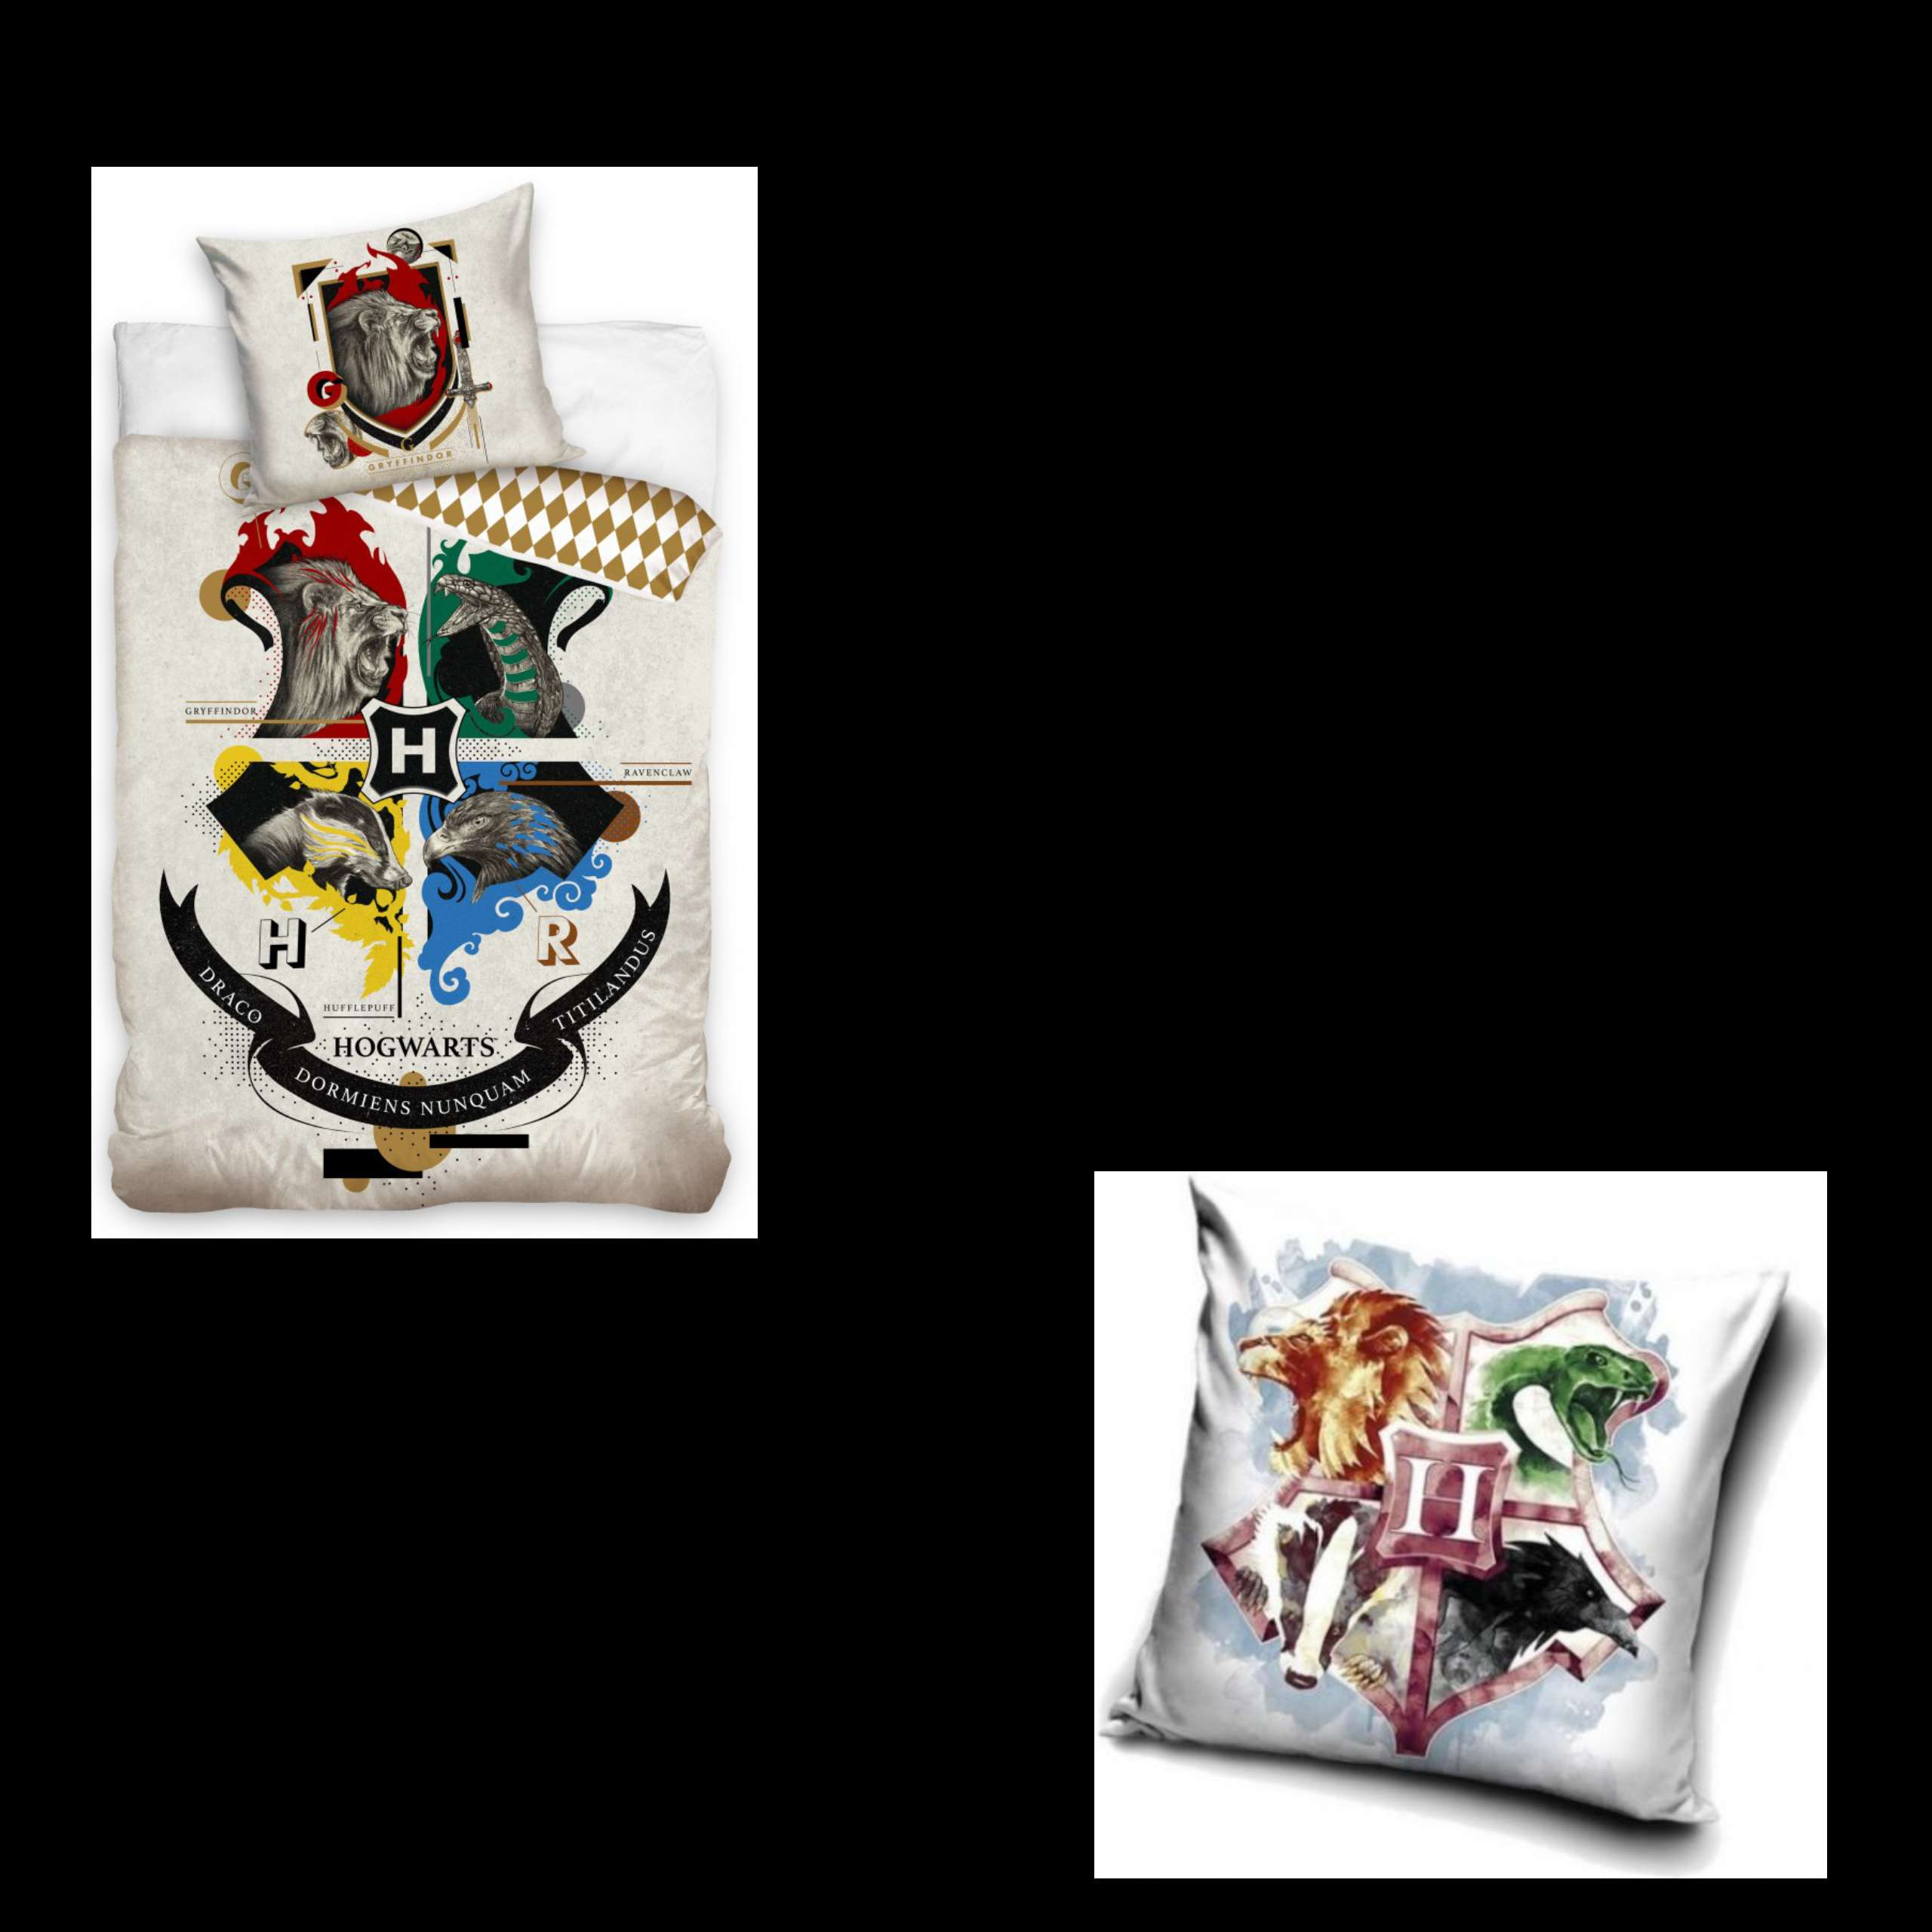 Harry Potter House With Animal Design Duvet And Matching Cushion Set